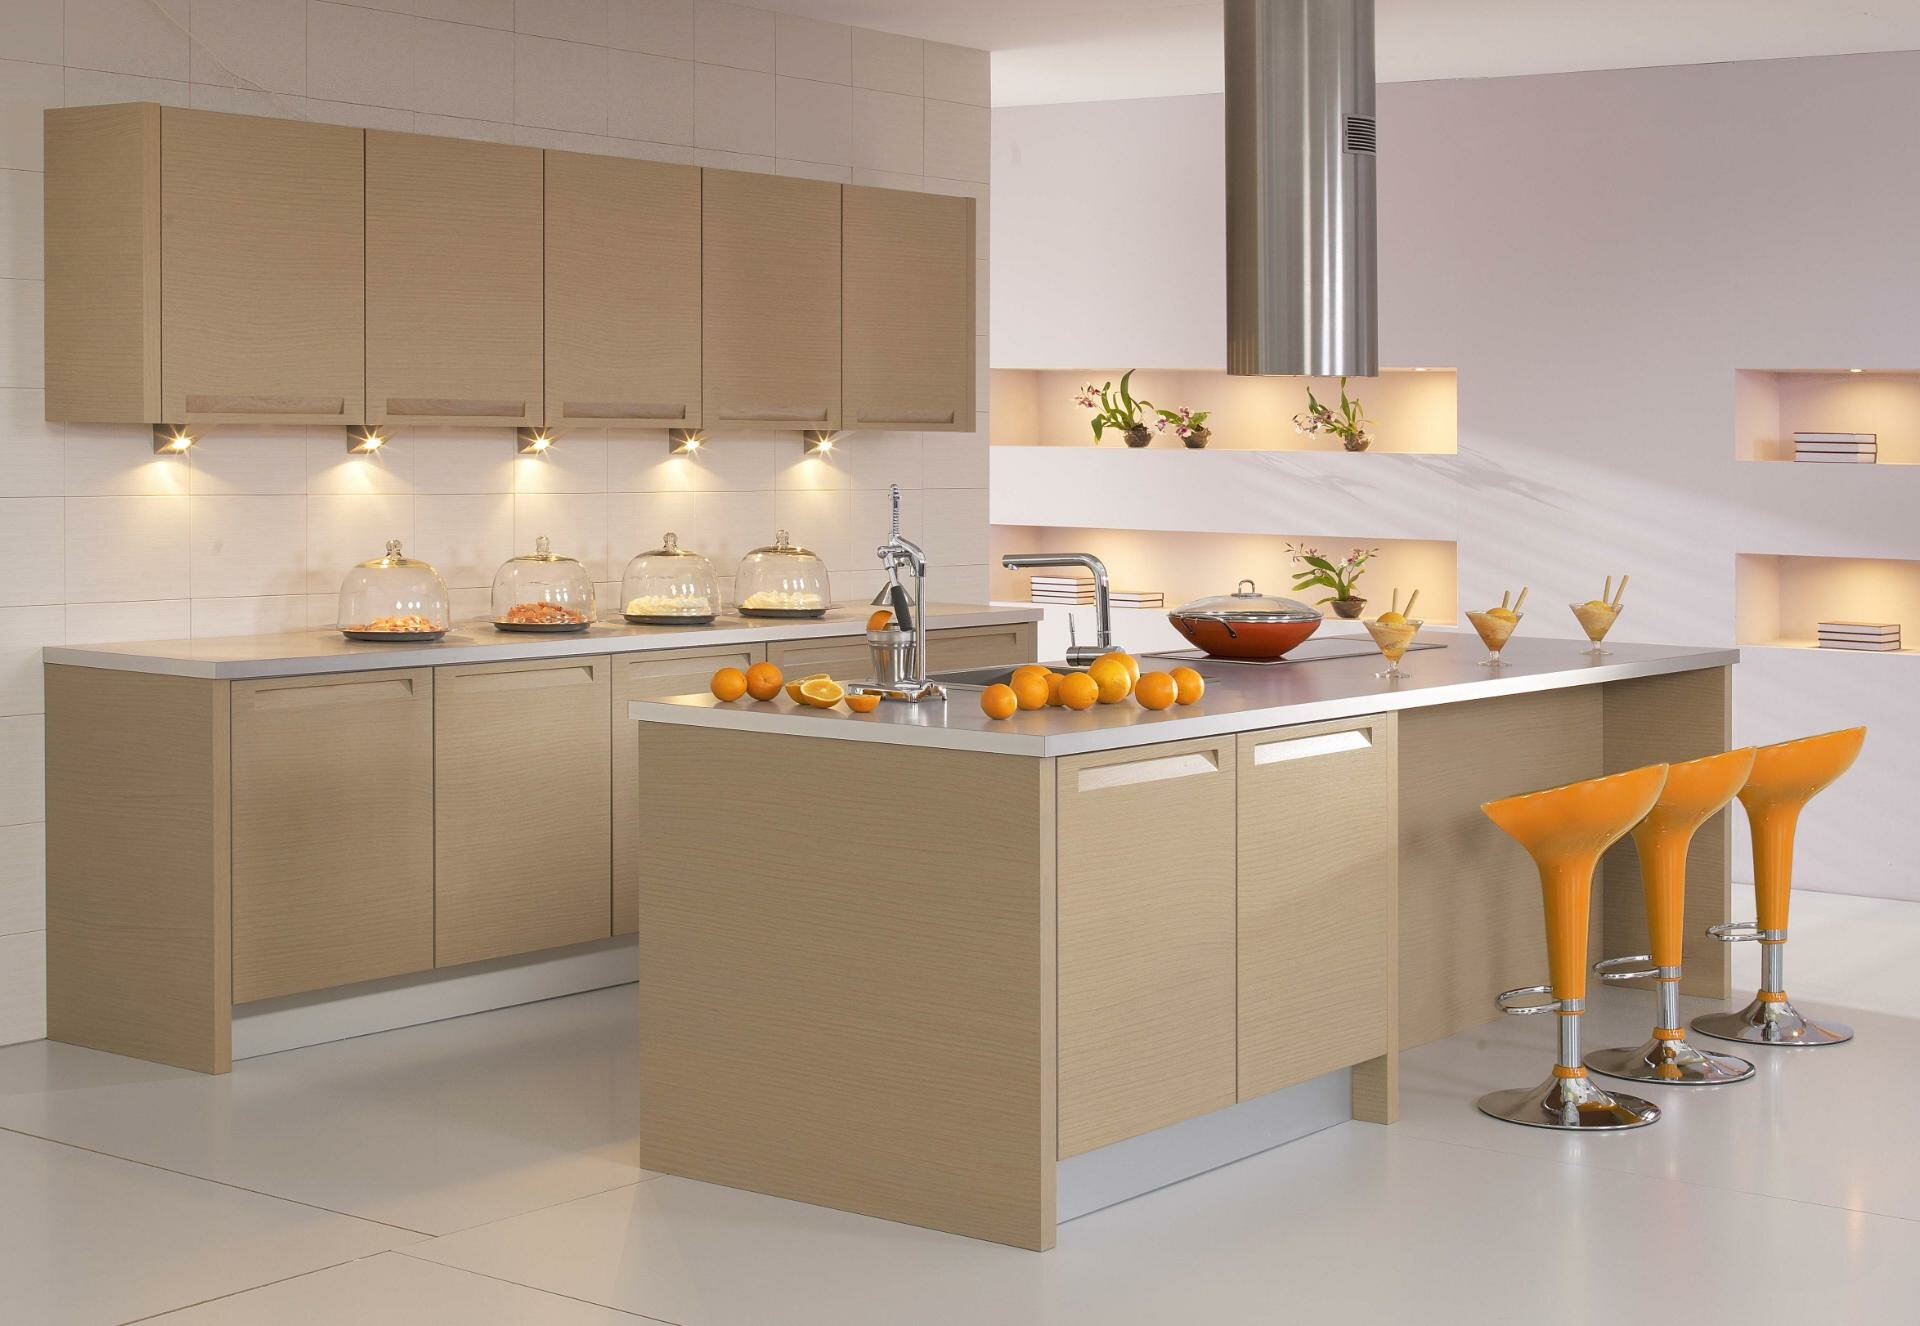 15 great kitchen cabinets that will inspire you for Kitchen cupboard units